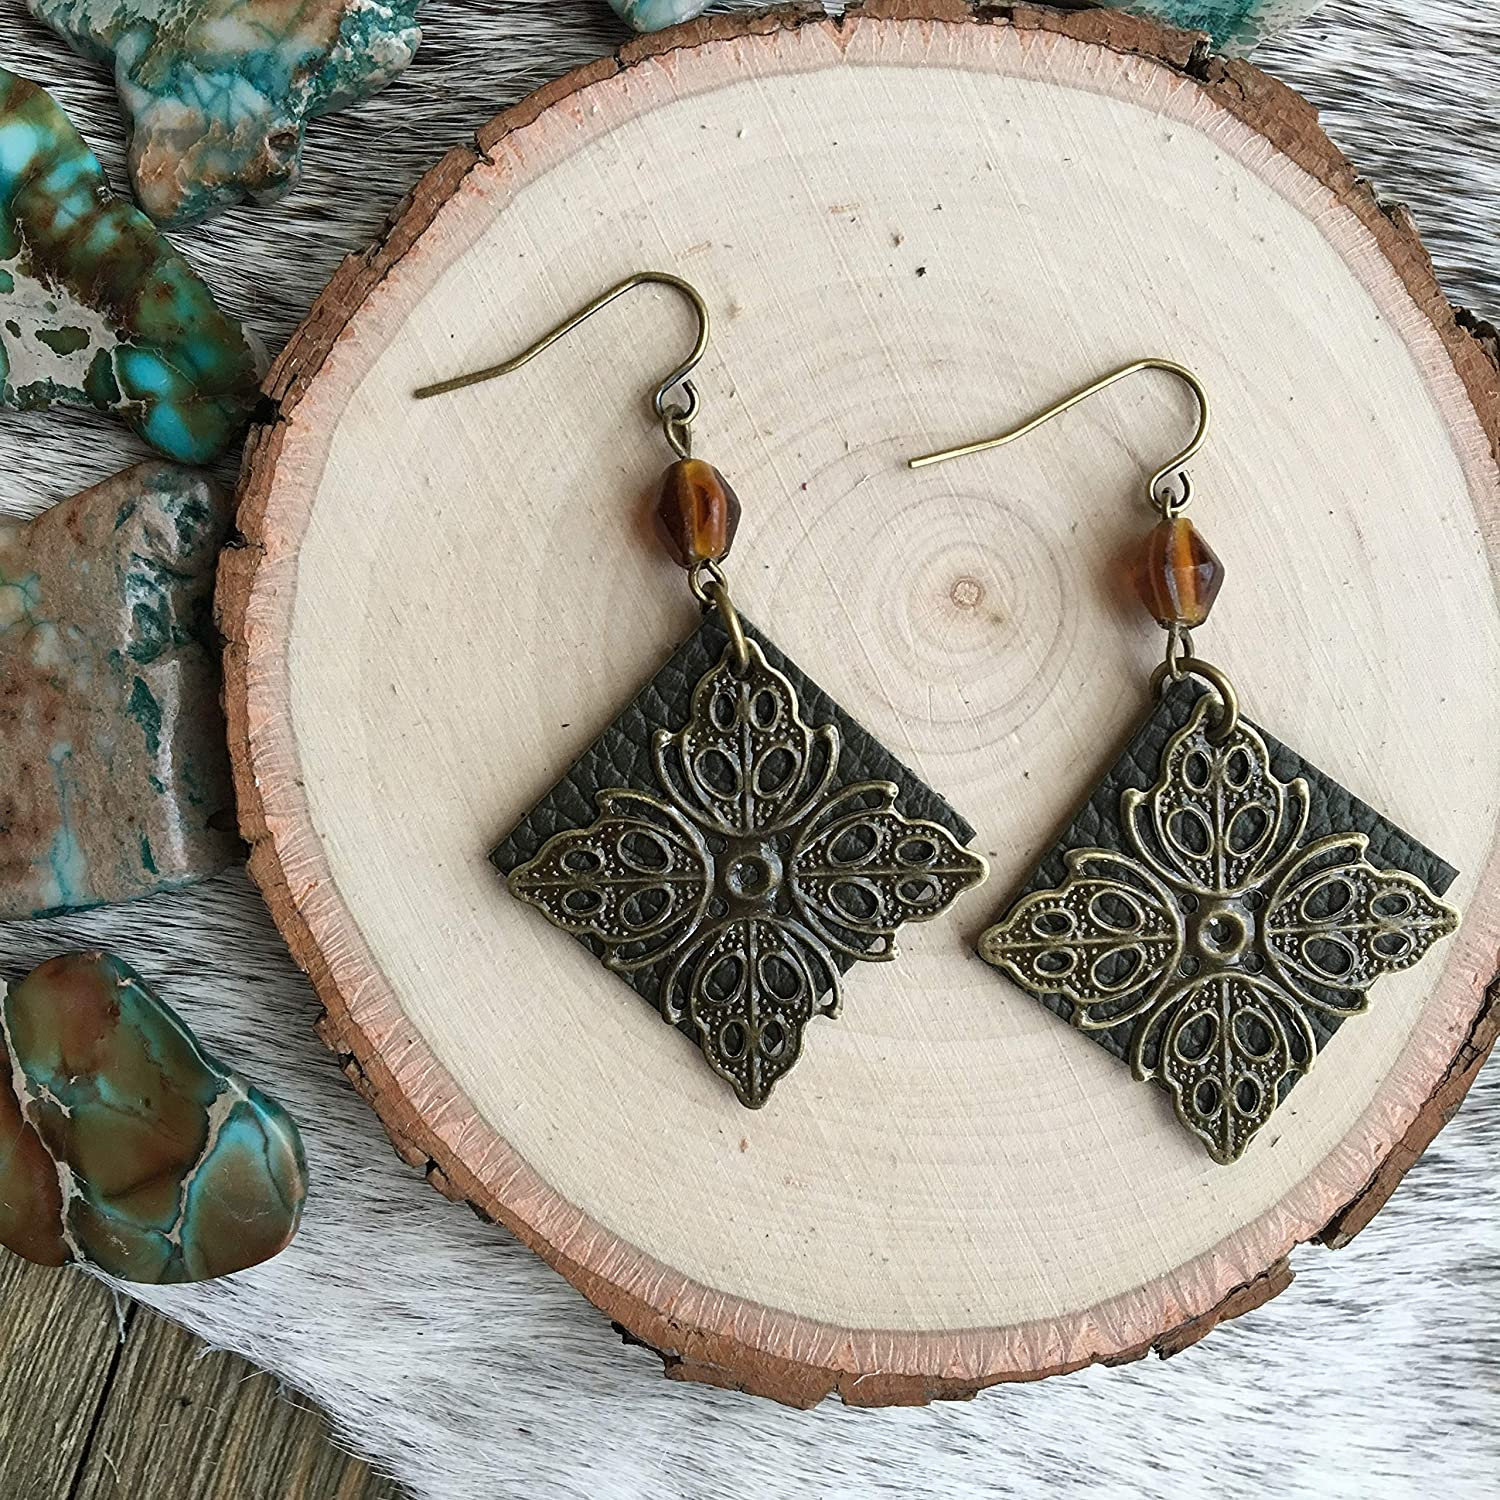 Boho Earrings Small Lightweight Dangles in Olive Green Leather and Bronze FIligree